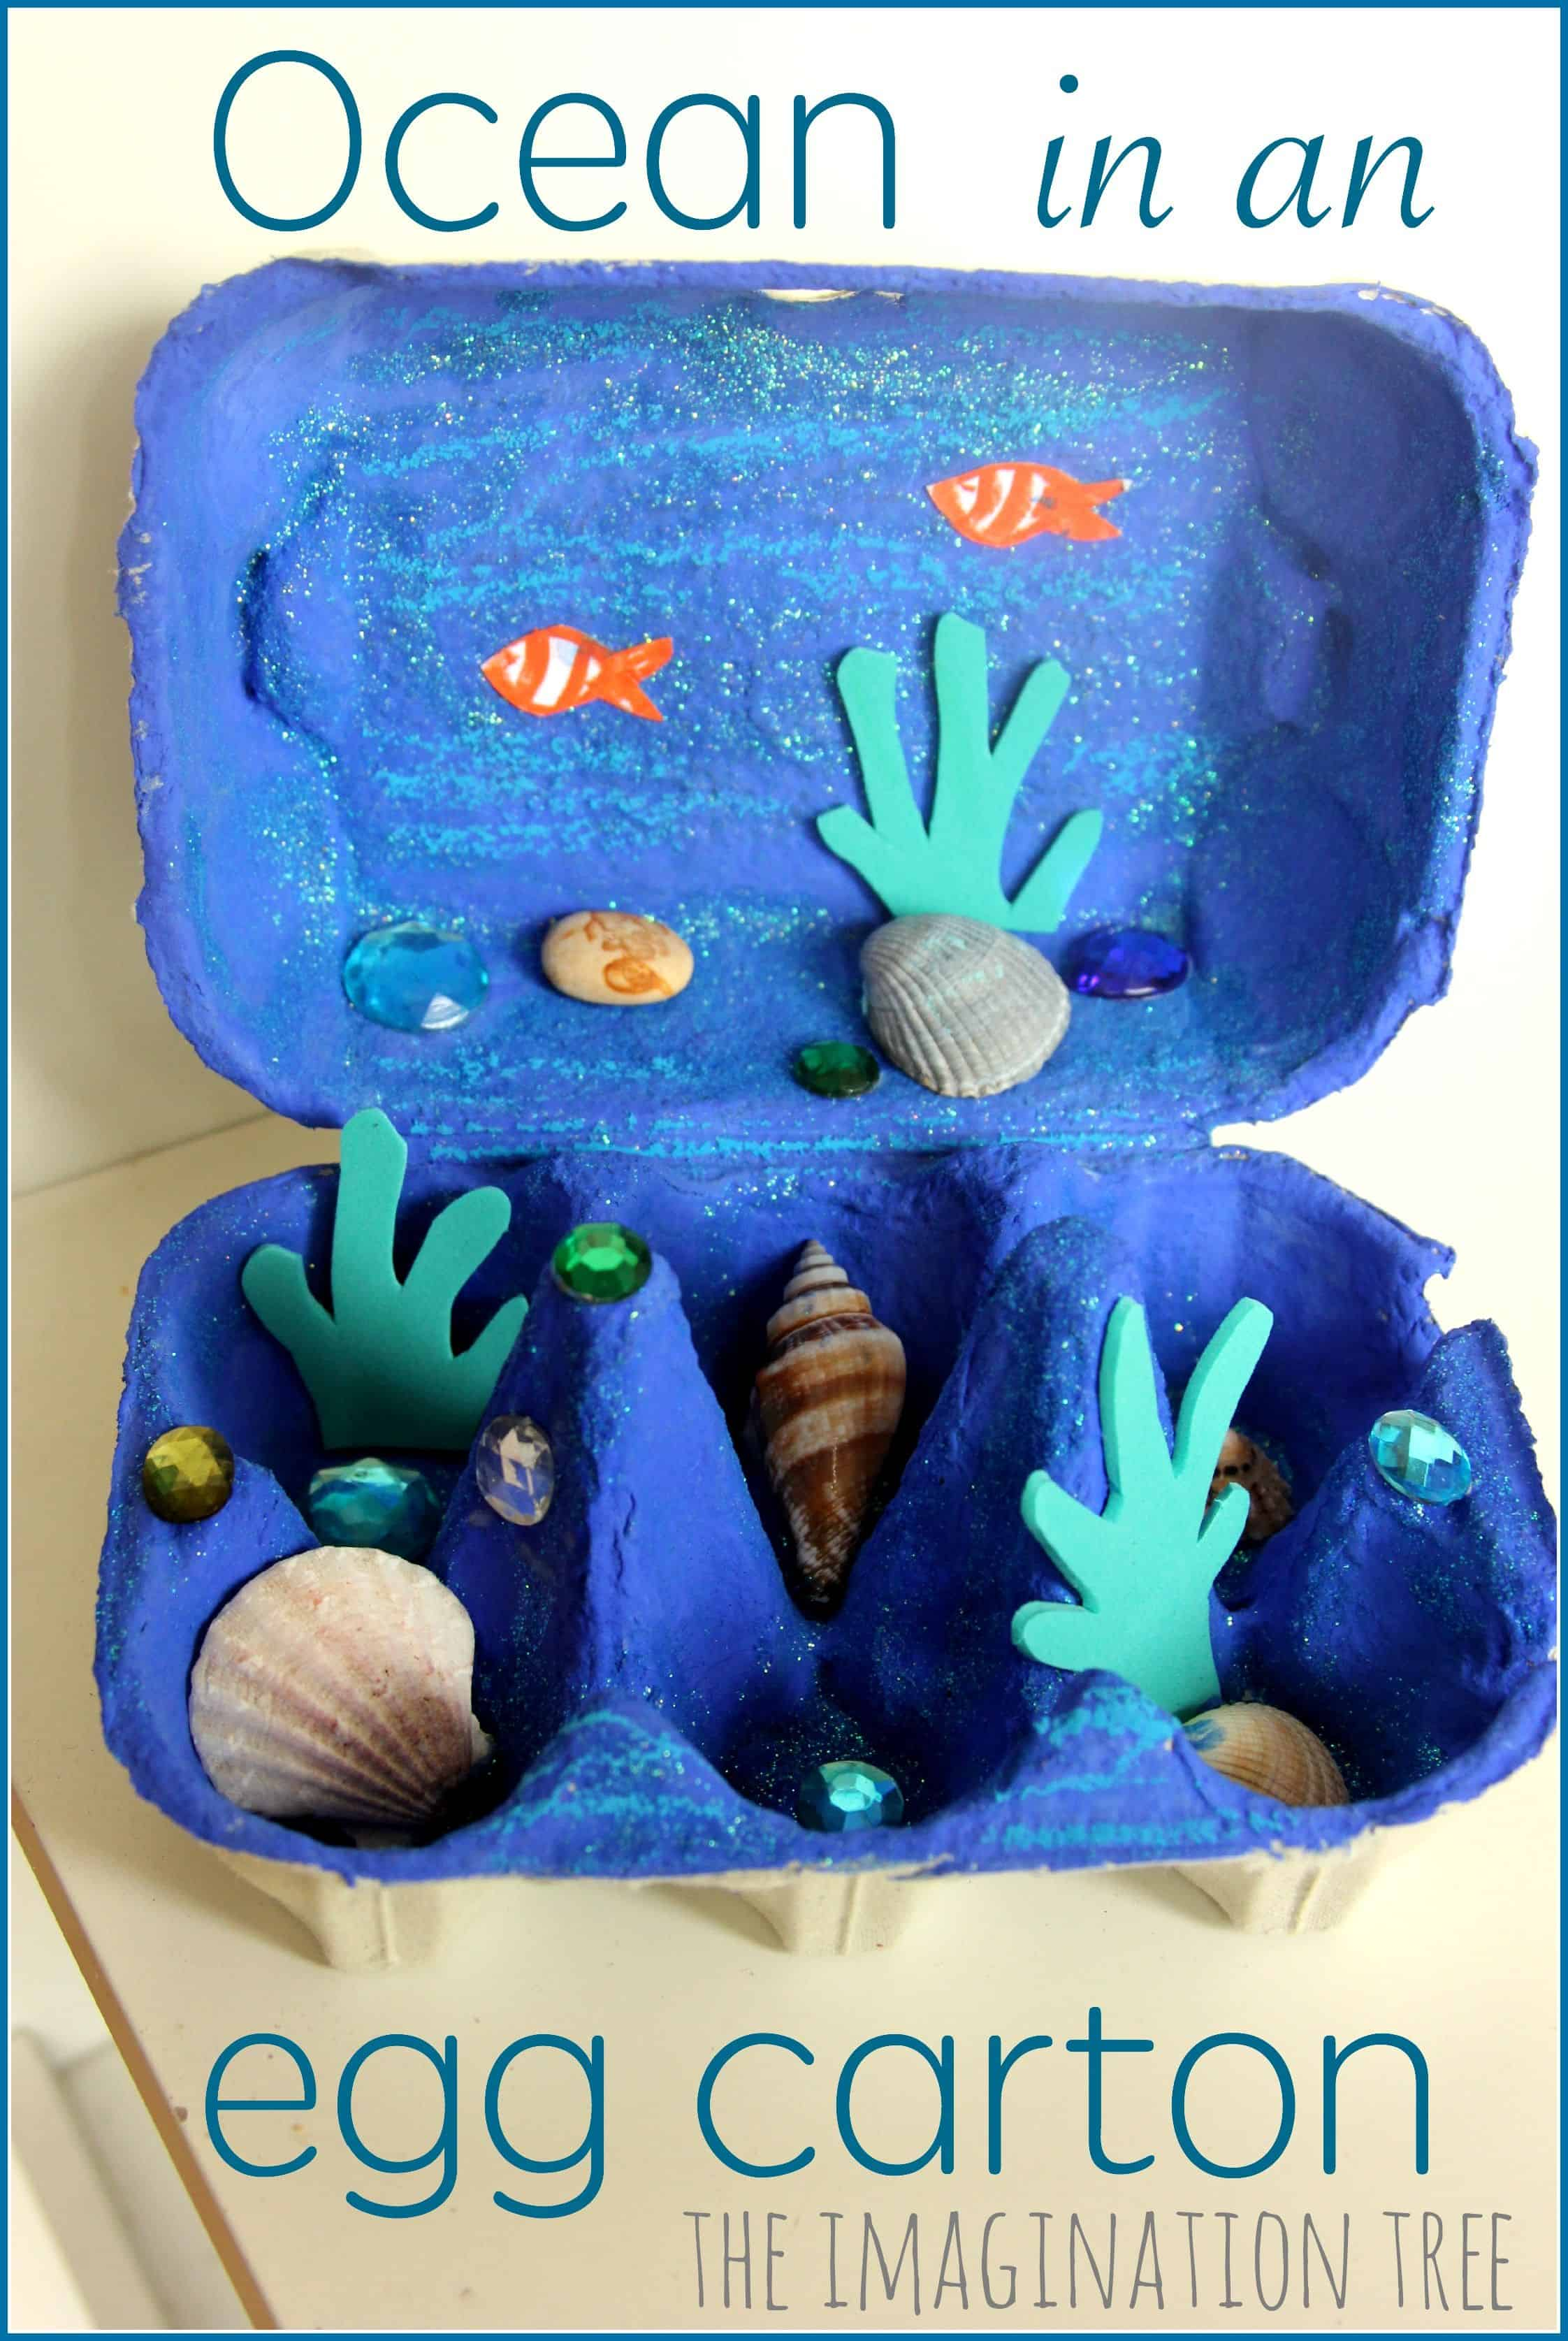 Ocean in an egg carton